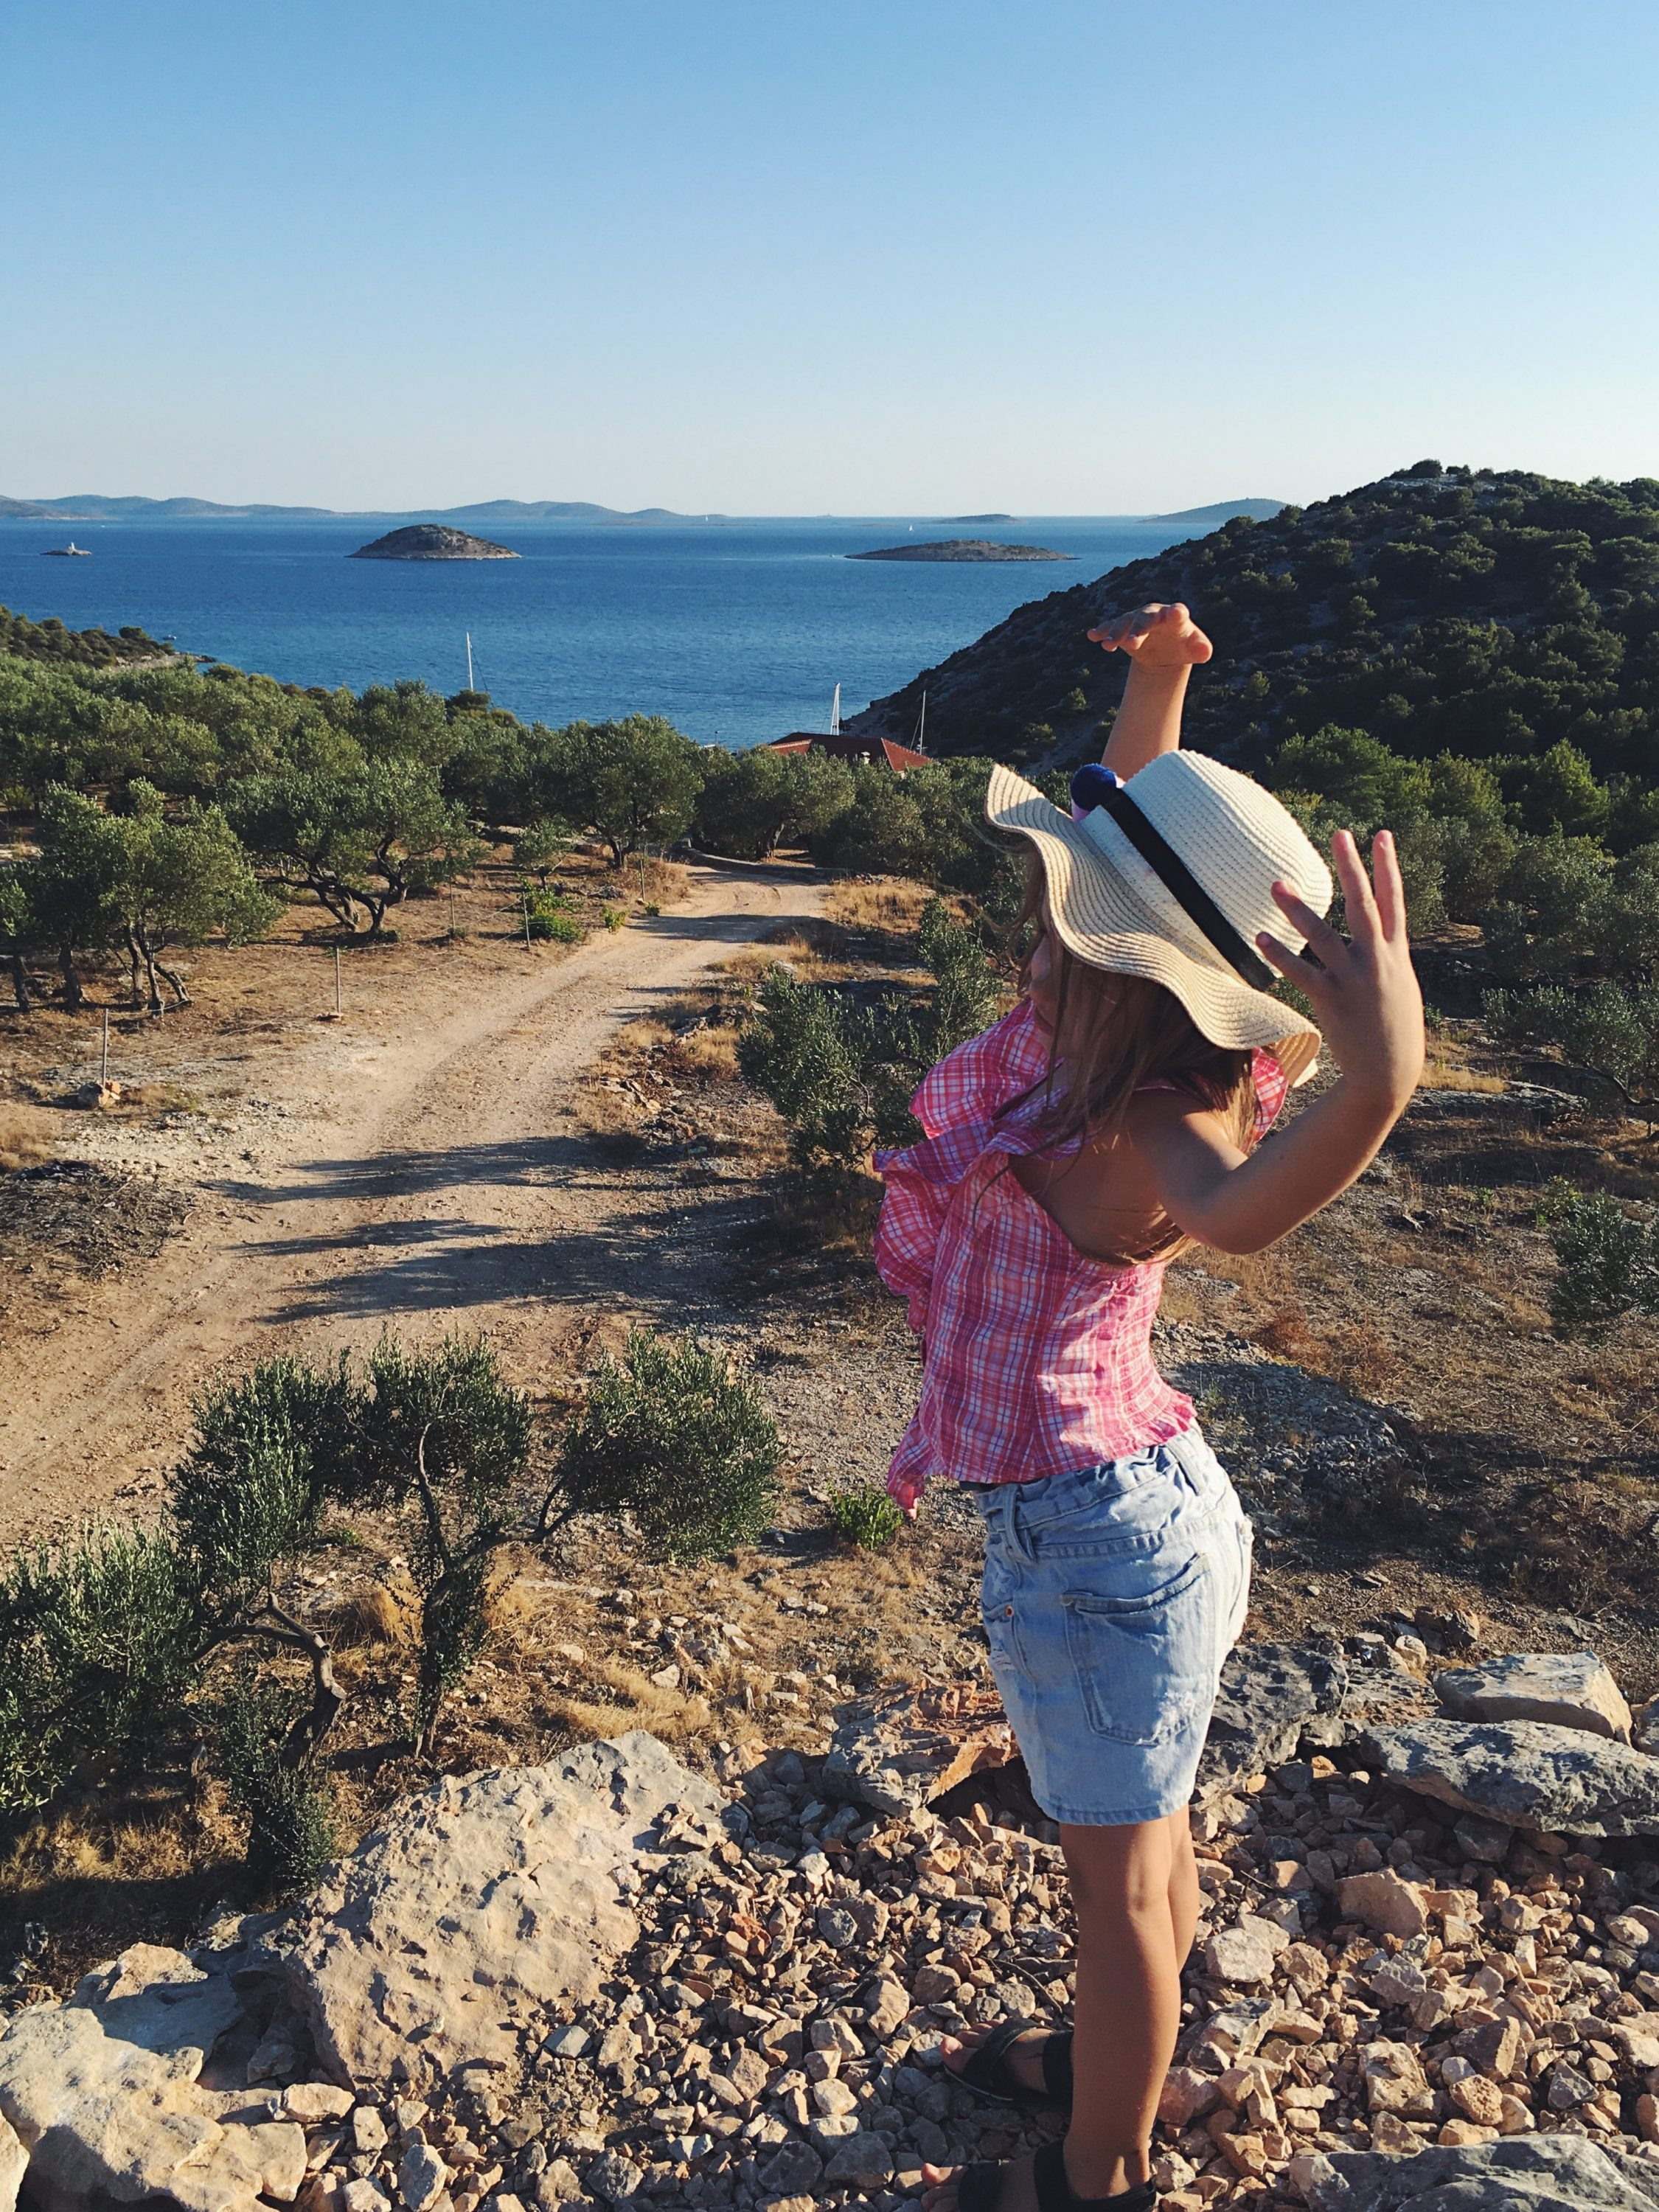 Murter Island Croatia full of life free spirit nature mom blogger jezera tisno happiness mama blogerica traveling kids lifestyle sea adriatic jadransko more more less ines blogger travel boat summer adventure pudarica tradicija sunset planinarenje explor kornati sv.nikola murtar